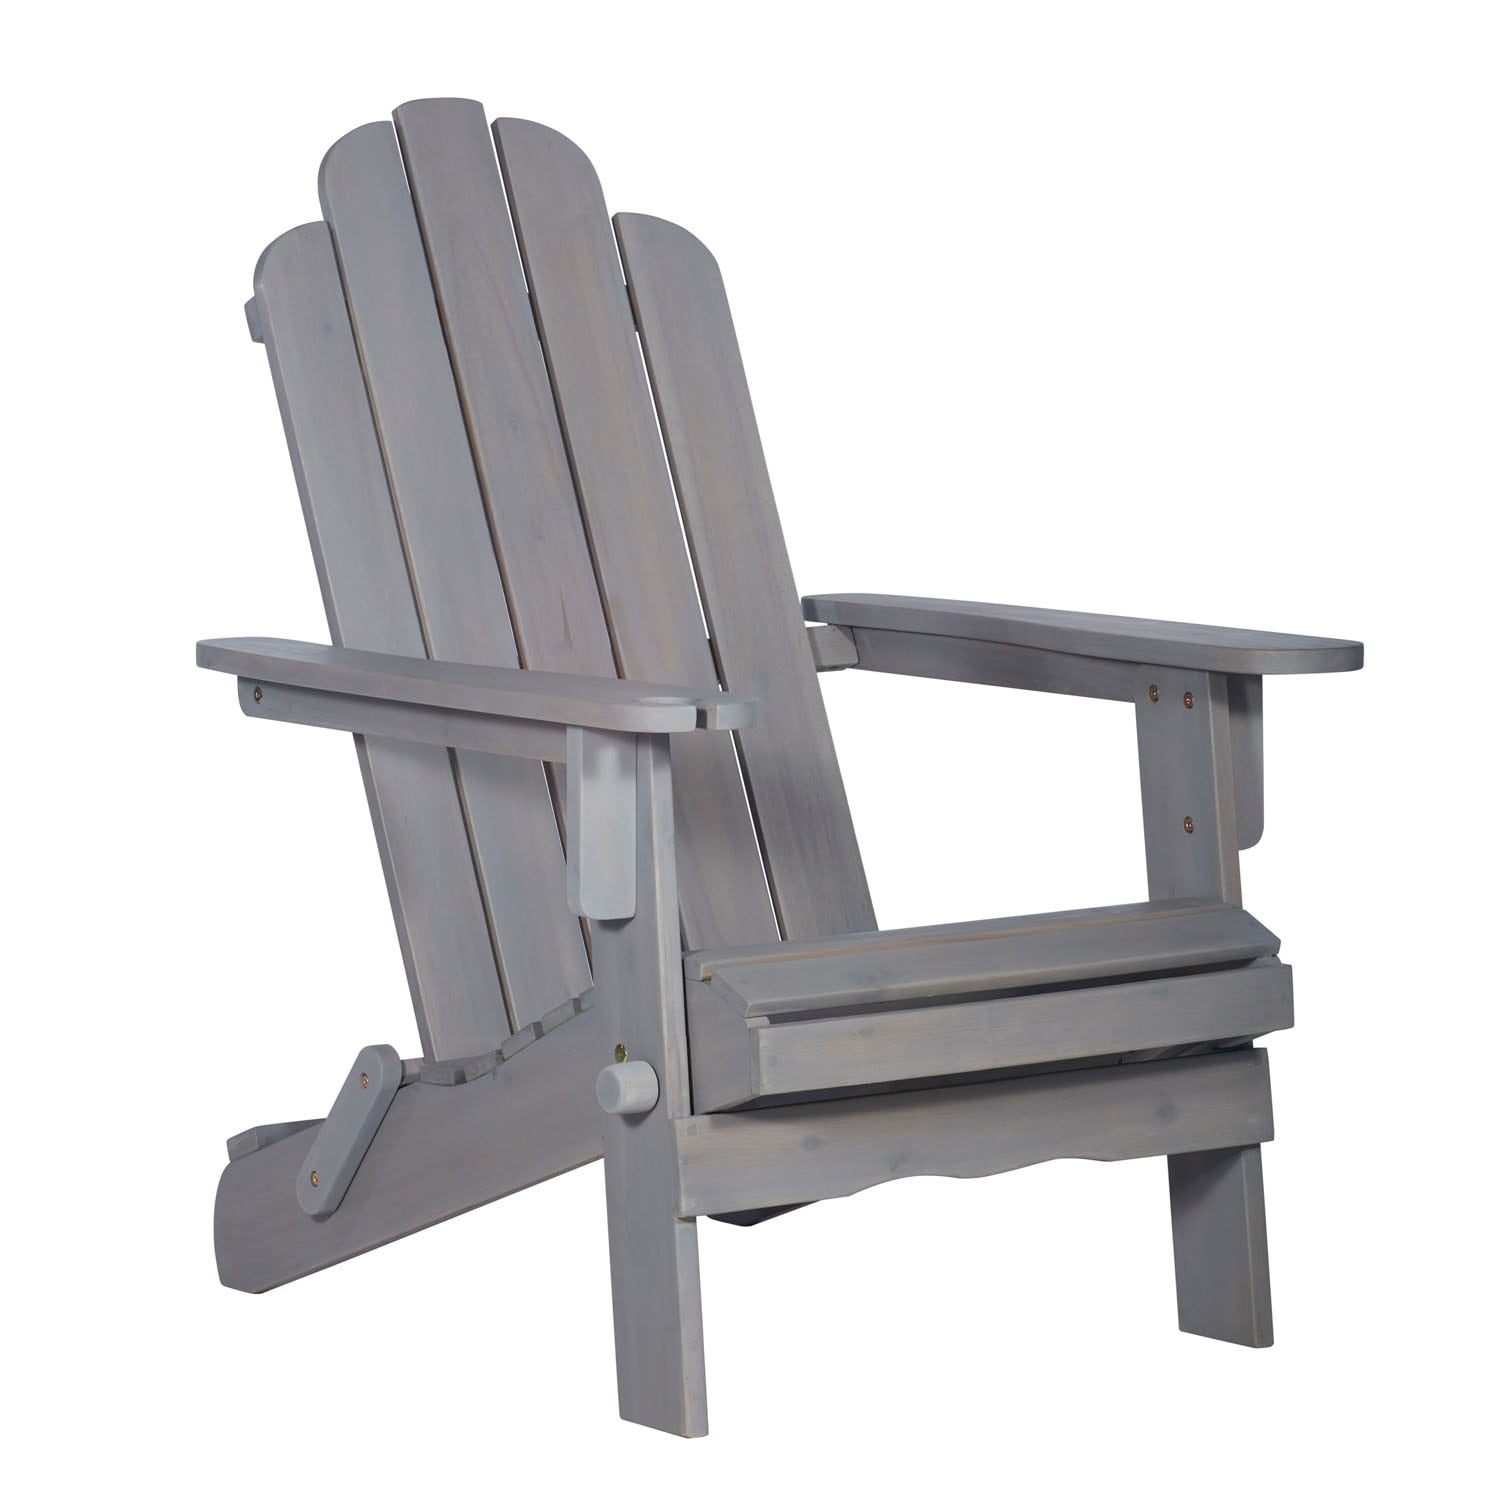 Astonishing Patio Wood Adirondack Chair Gray Wash Gamerscity Chair Design For Home Gamerscityorg